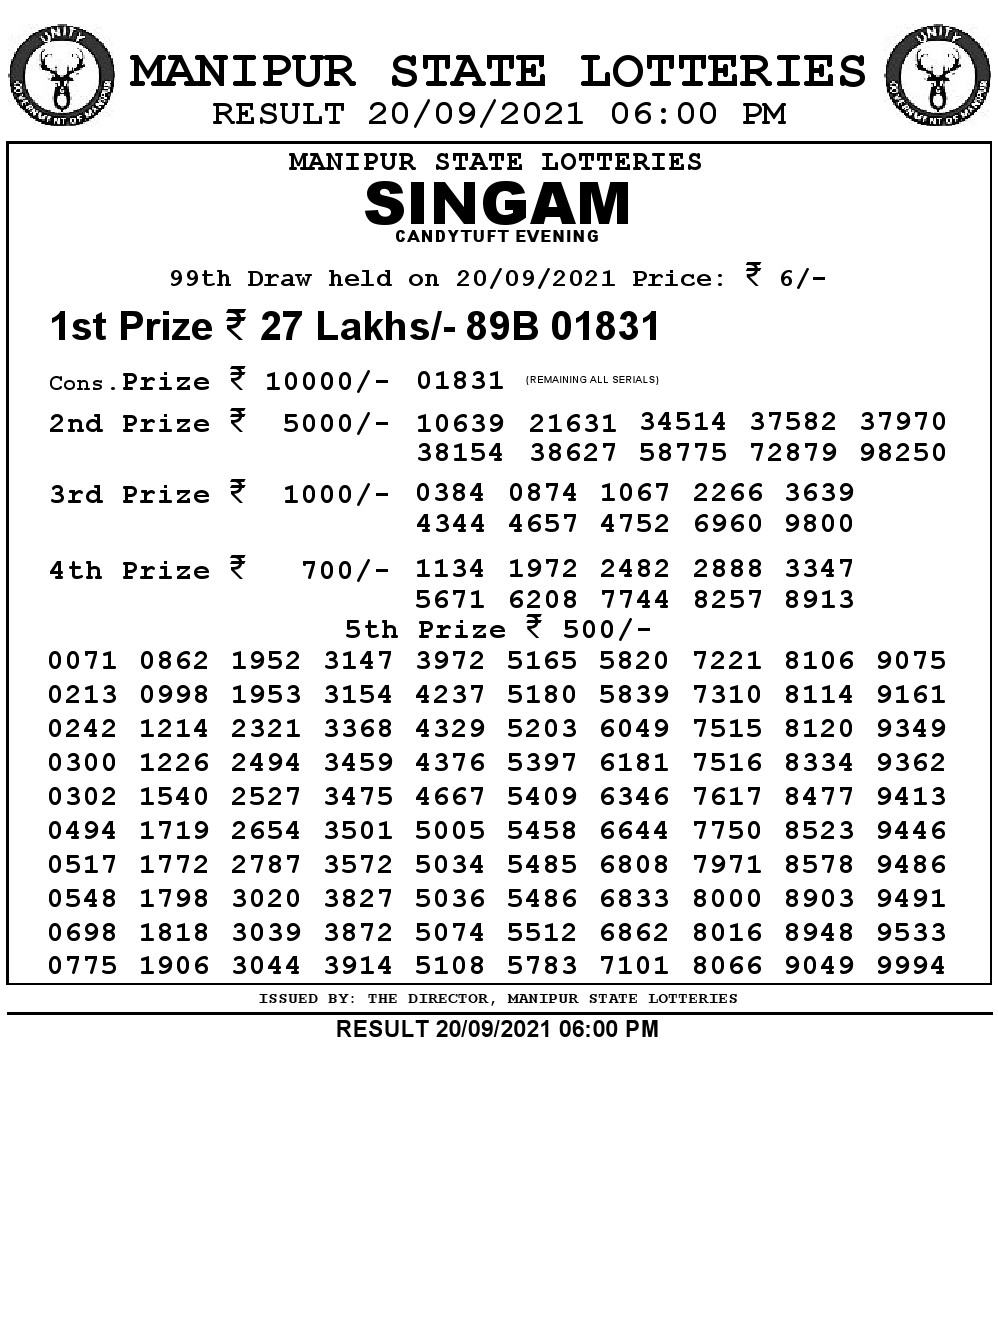 Manipur State Lottery Result (20.09.2021) Out now 06:00 PM pdf download